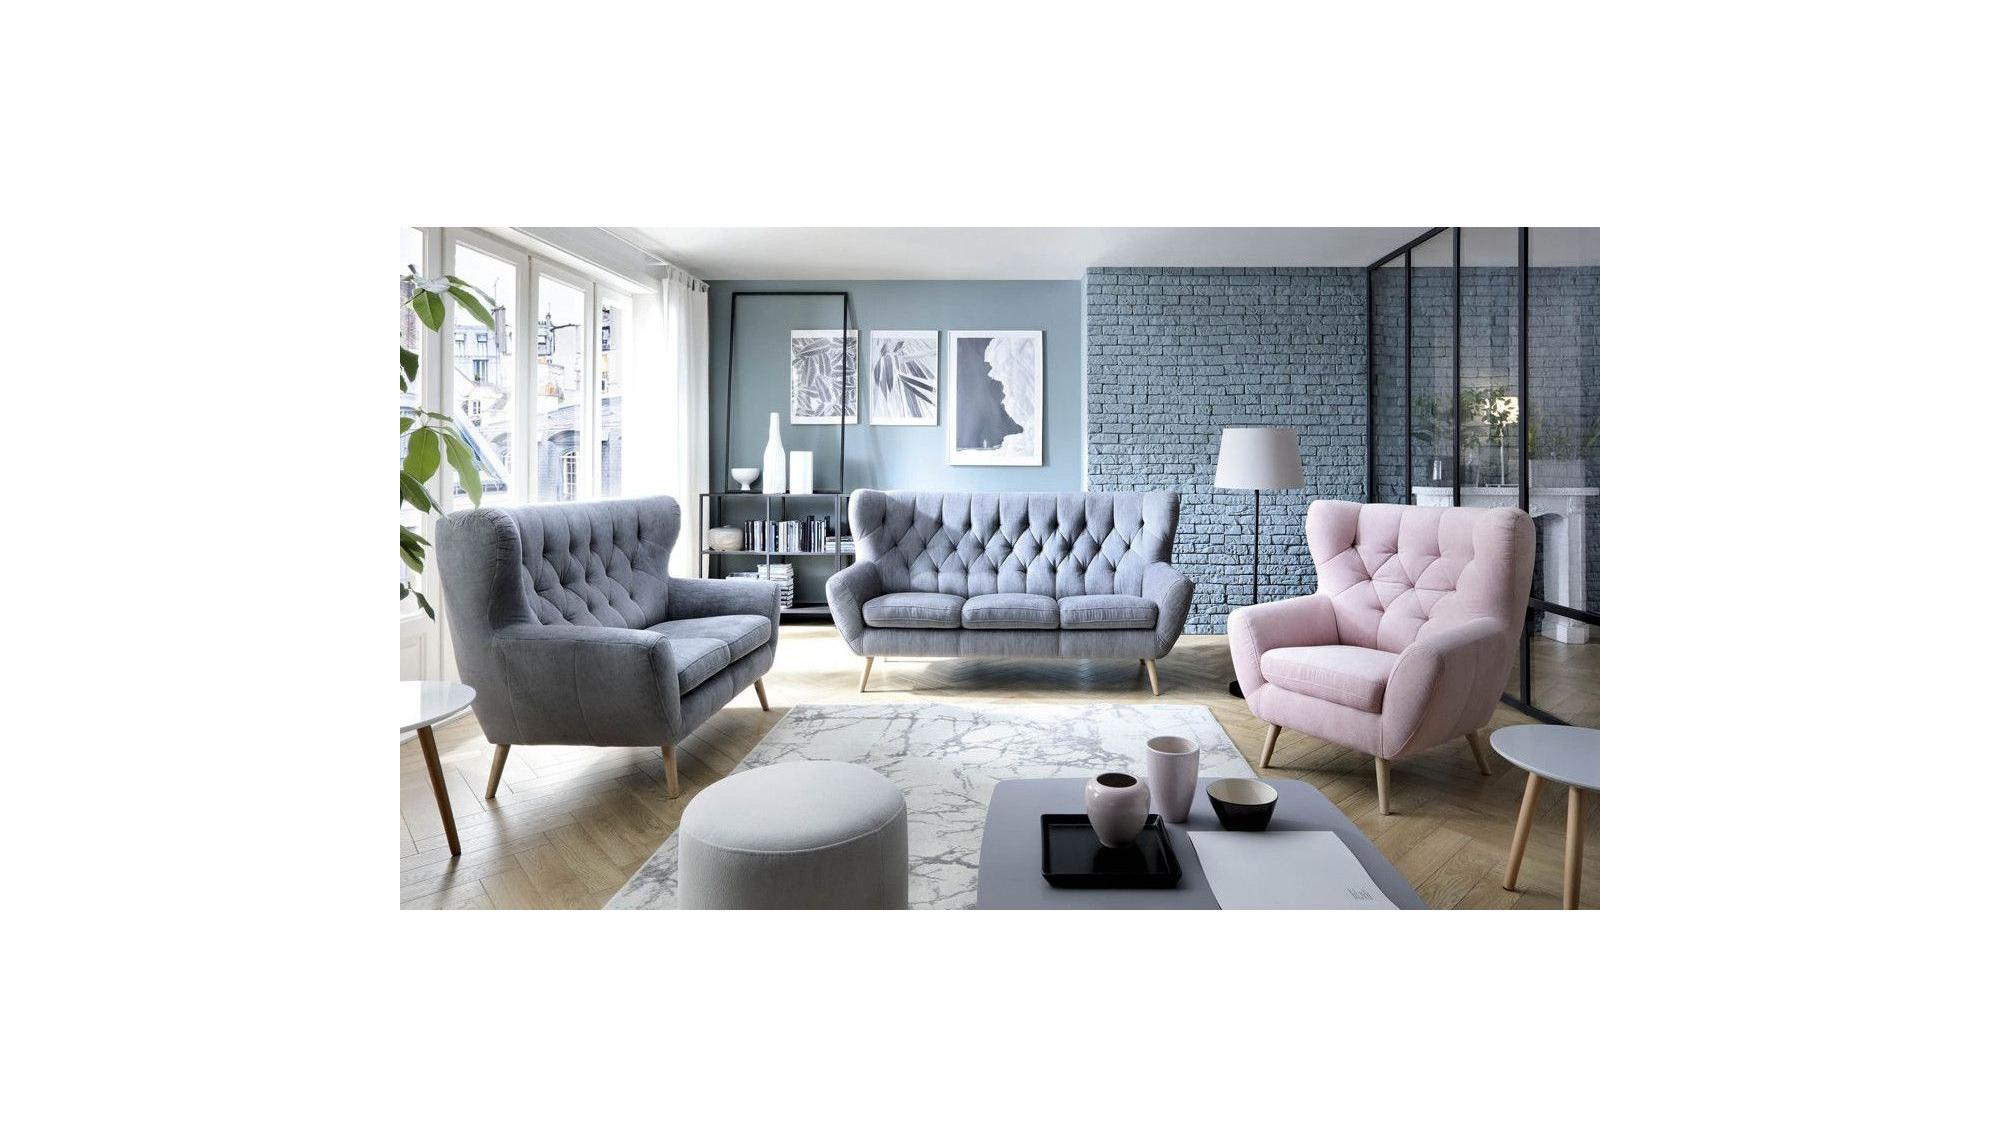 Bequemes Bequemes Sofa 1 2 3 Voss